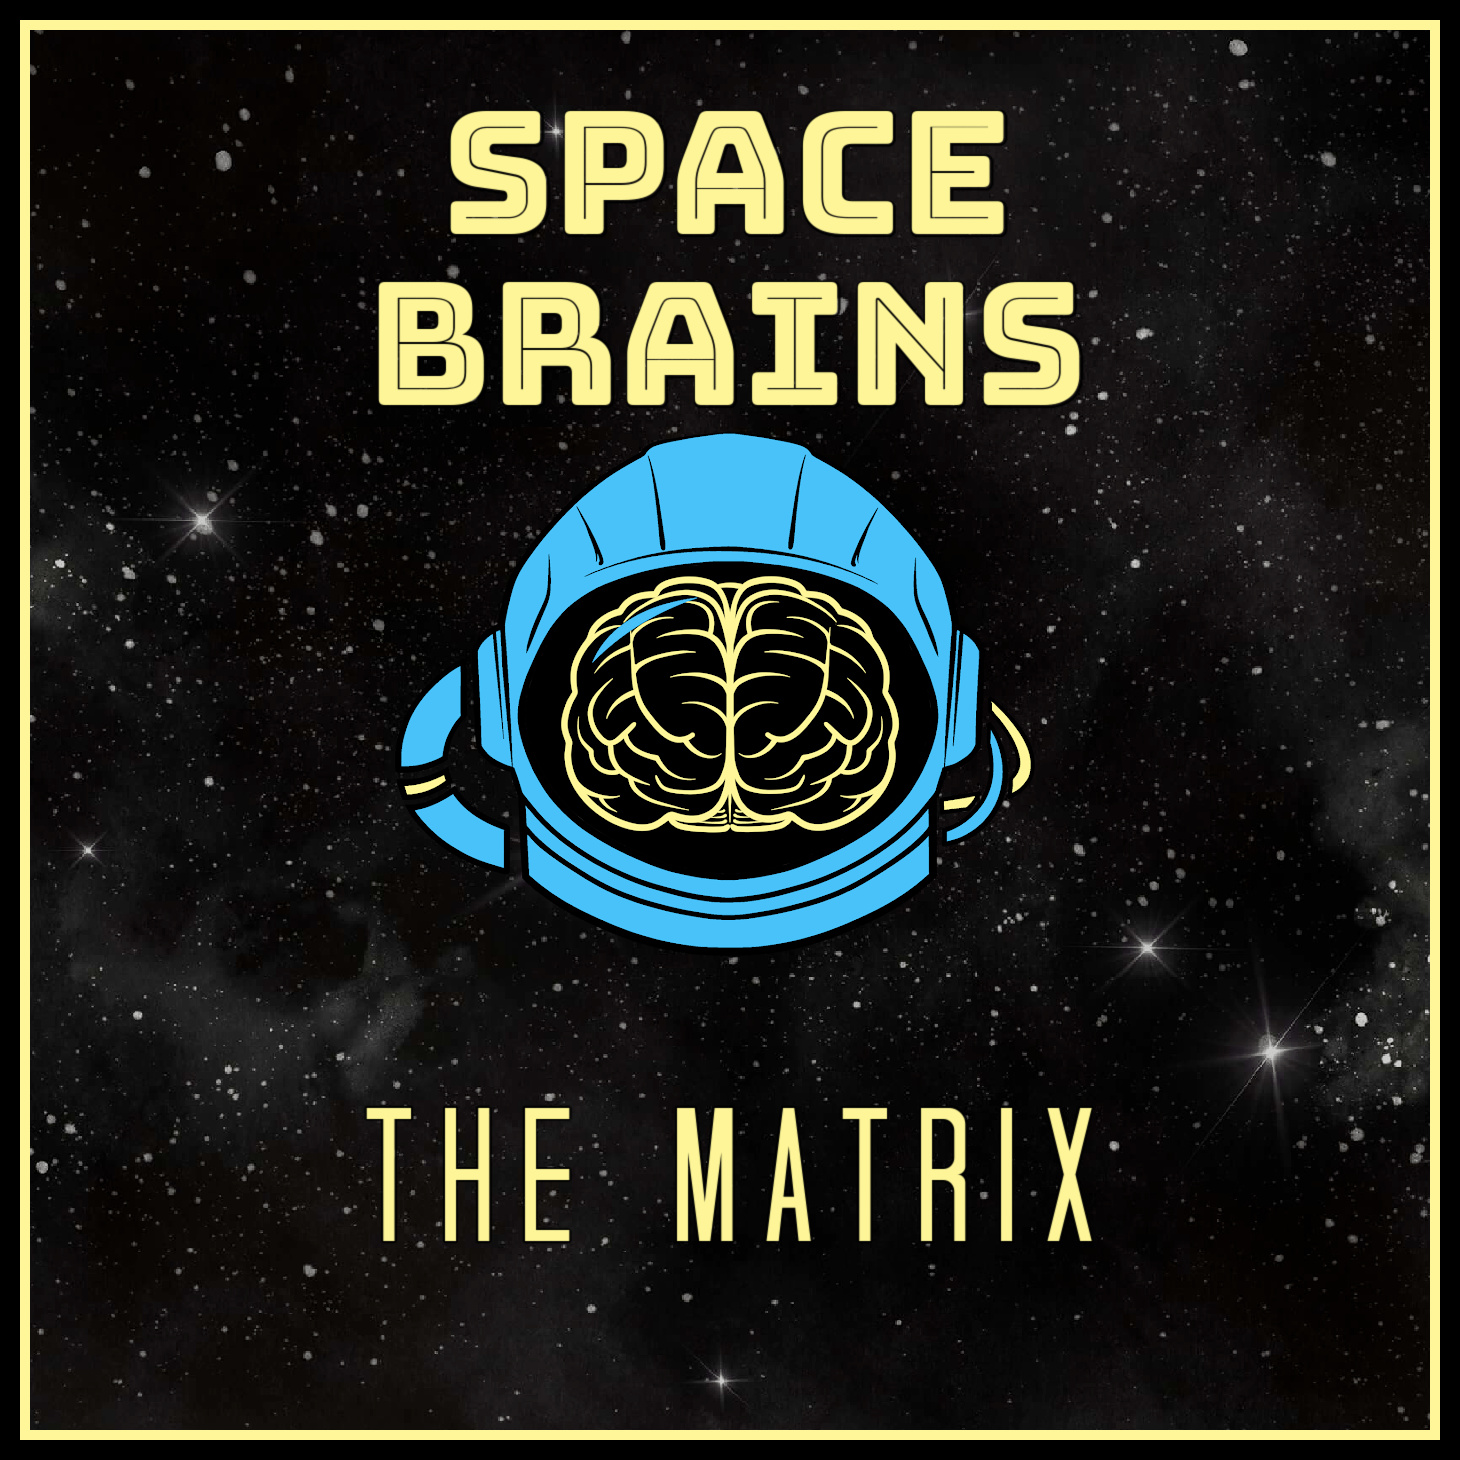 Space Brains - 50 - The Matrix